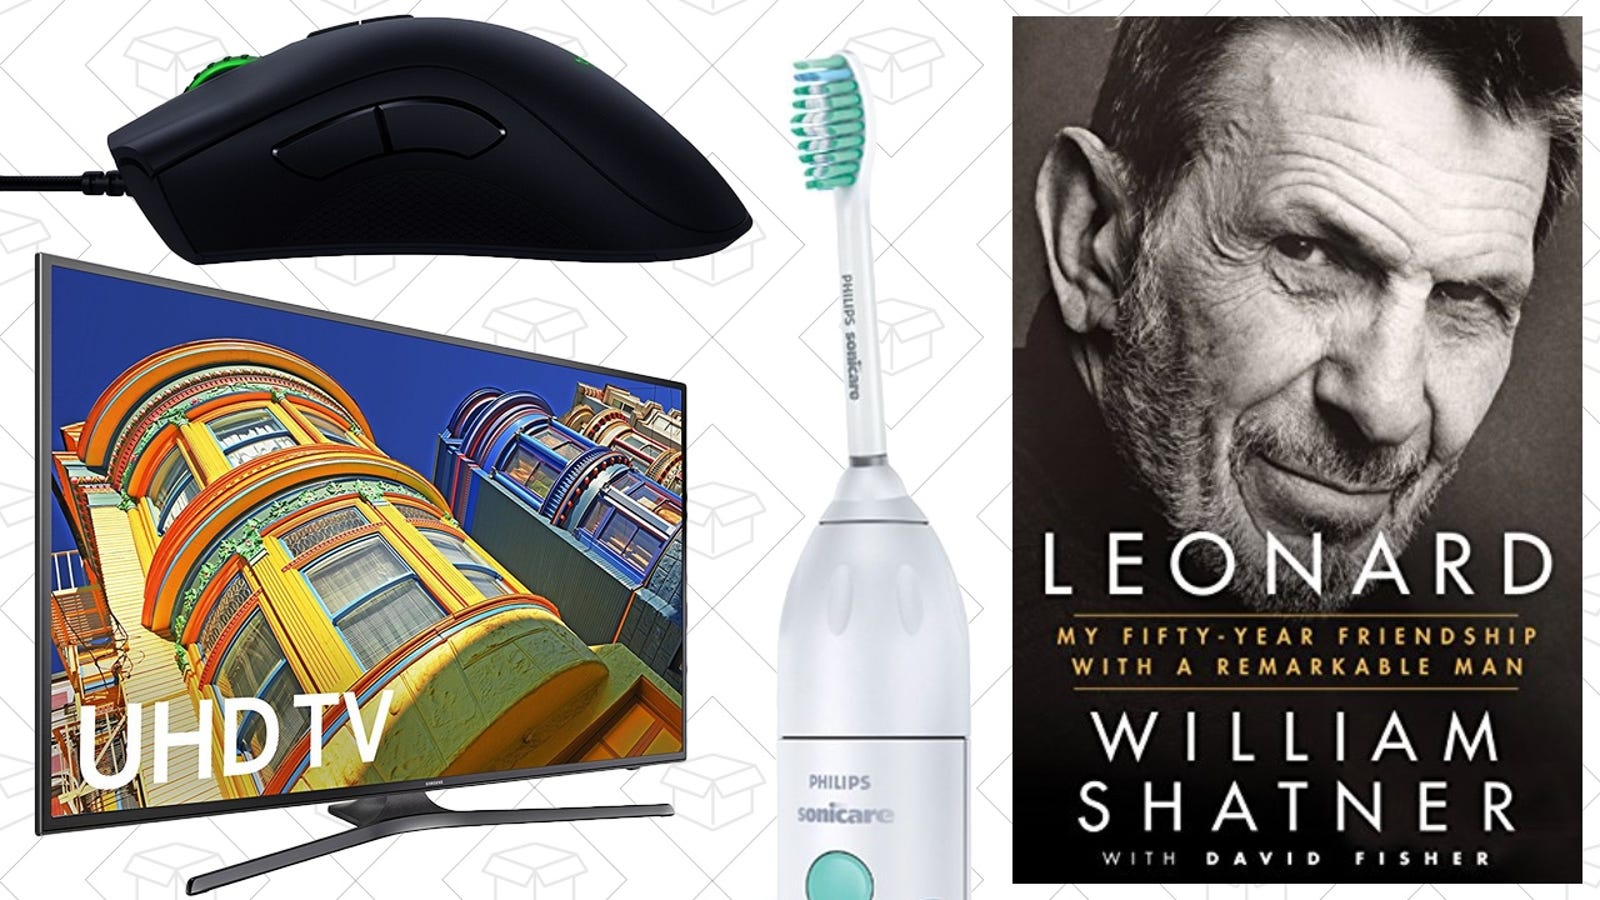 Todays best deals 4k samsung kindle ebooks 20 sonicare and more fandeluxe Choice Image